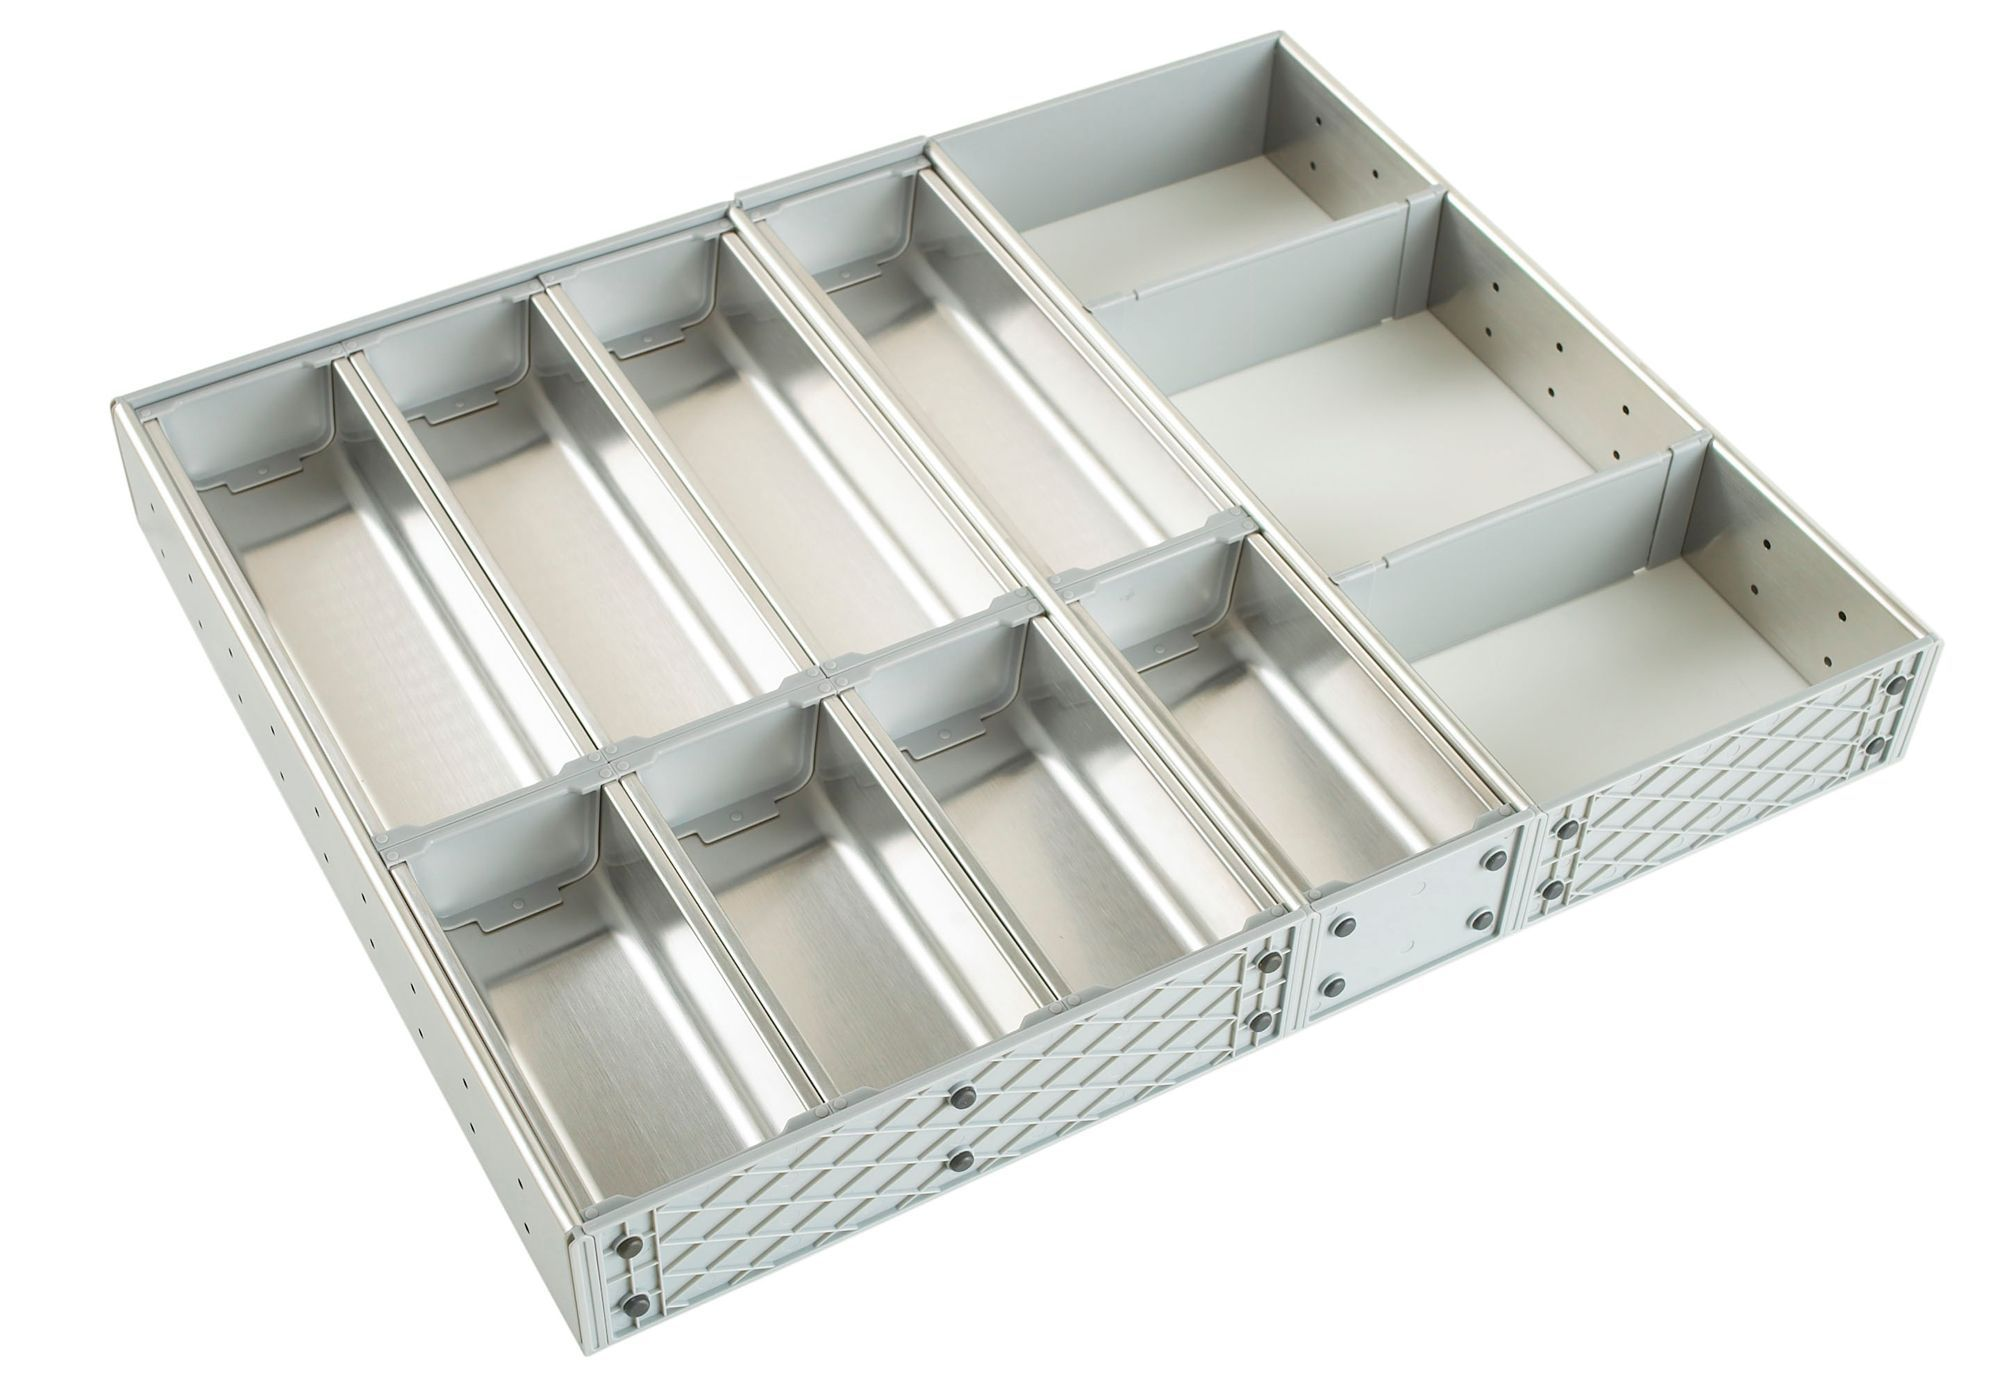 Cooke Lewis Stainless Steel Effect Kitchen Utensil Tray Departments Diy At B Q